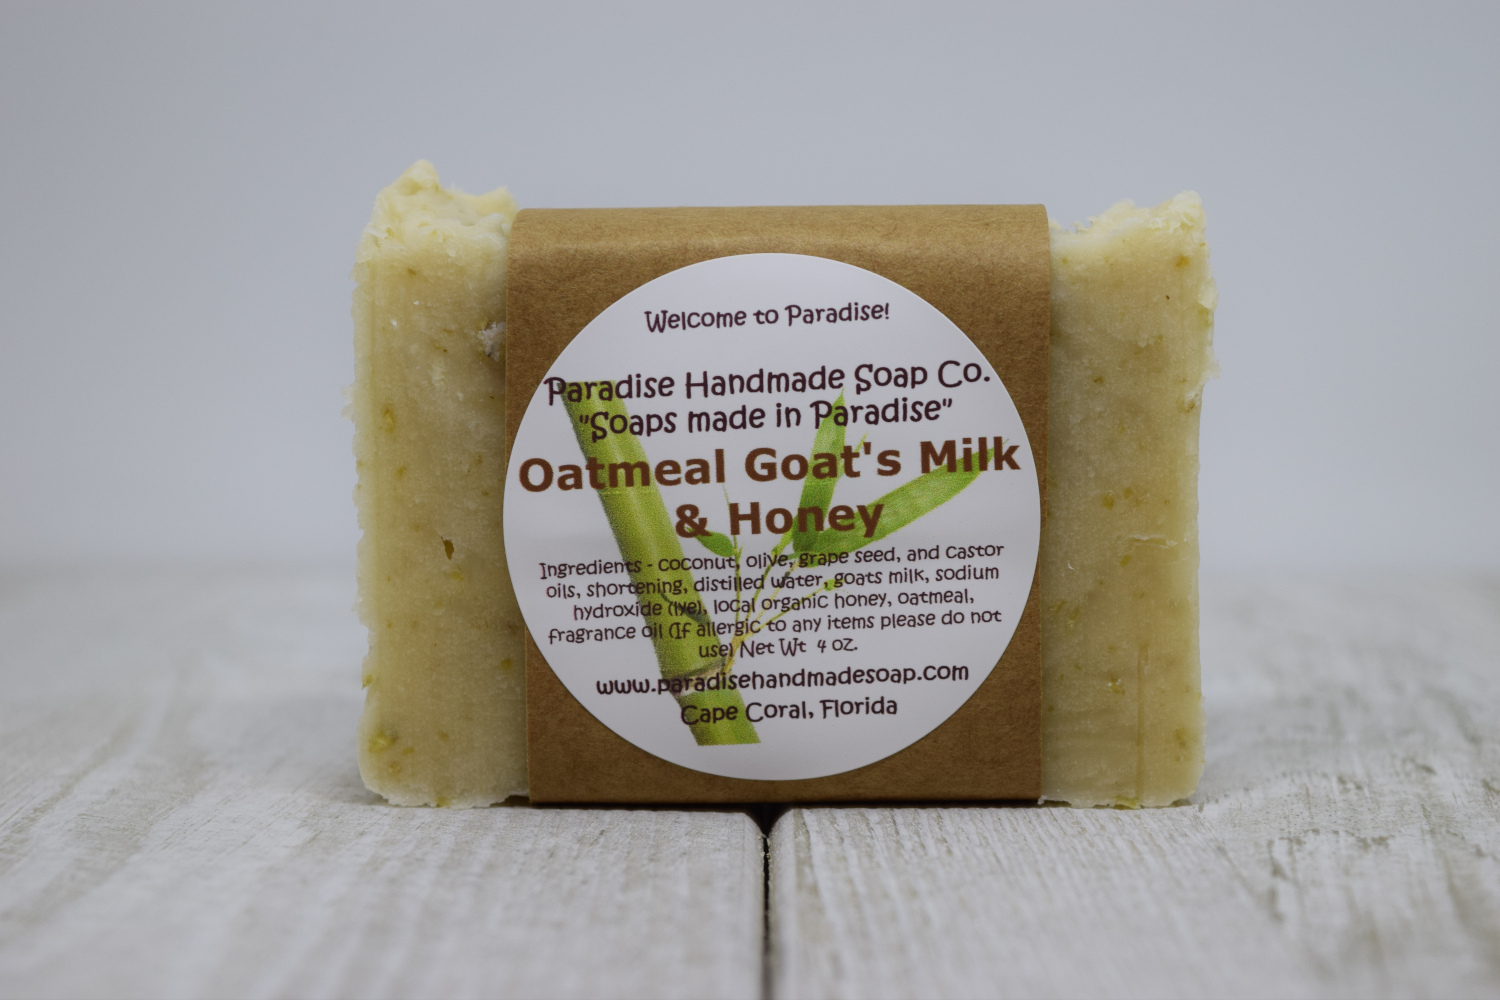 Oatmeal Goat's Milk & Honey Soap